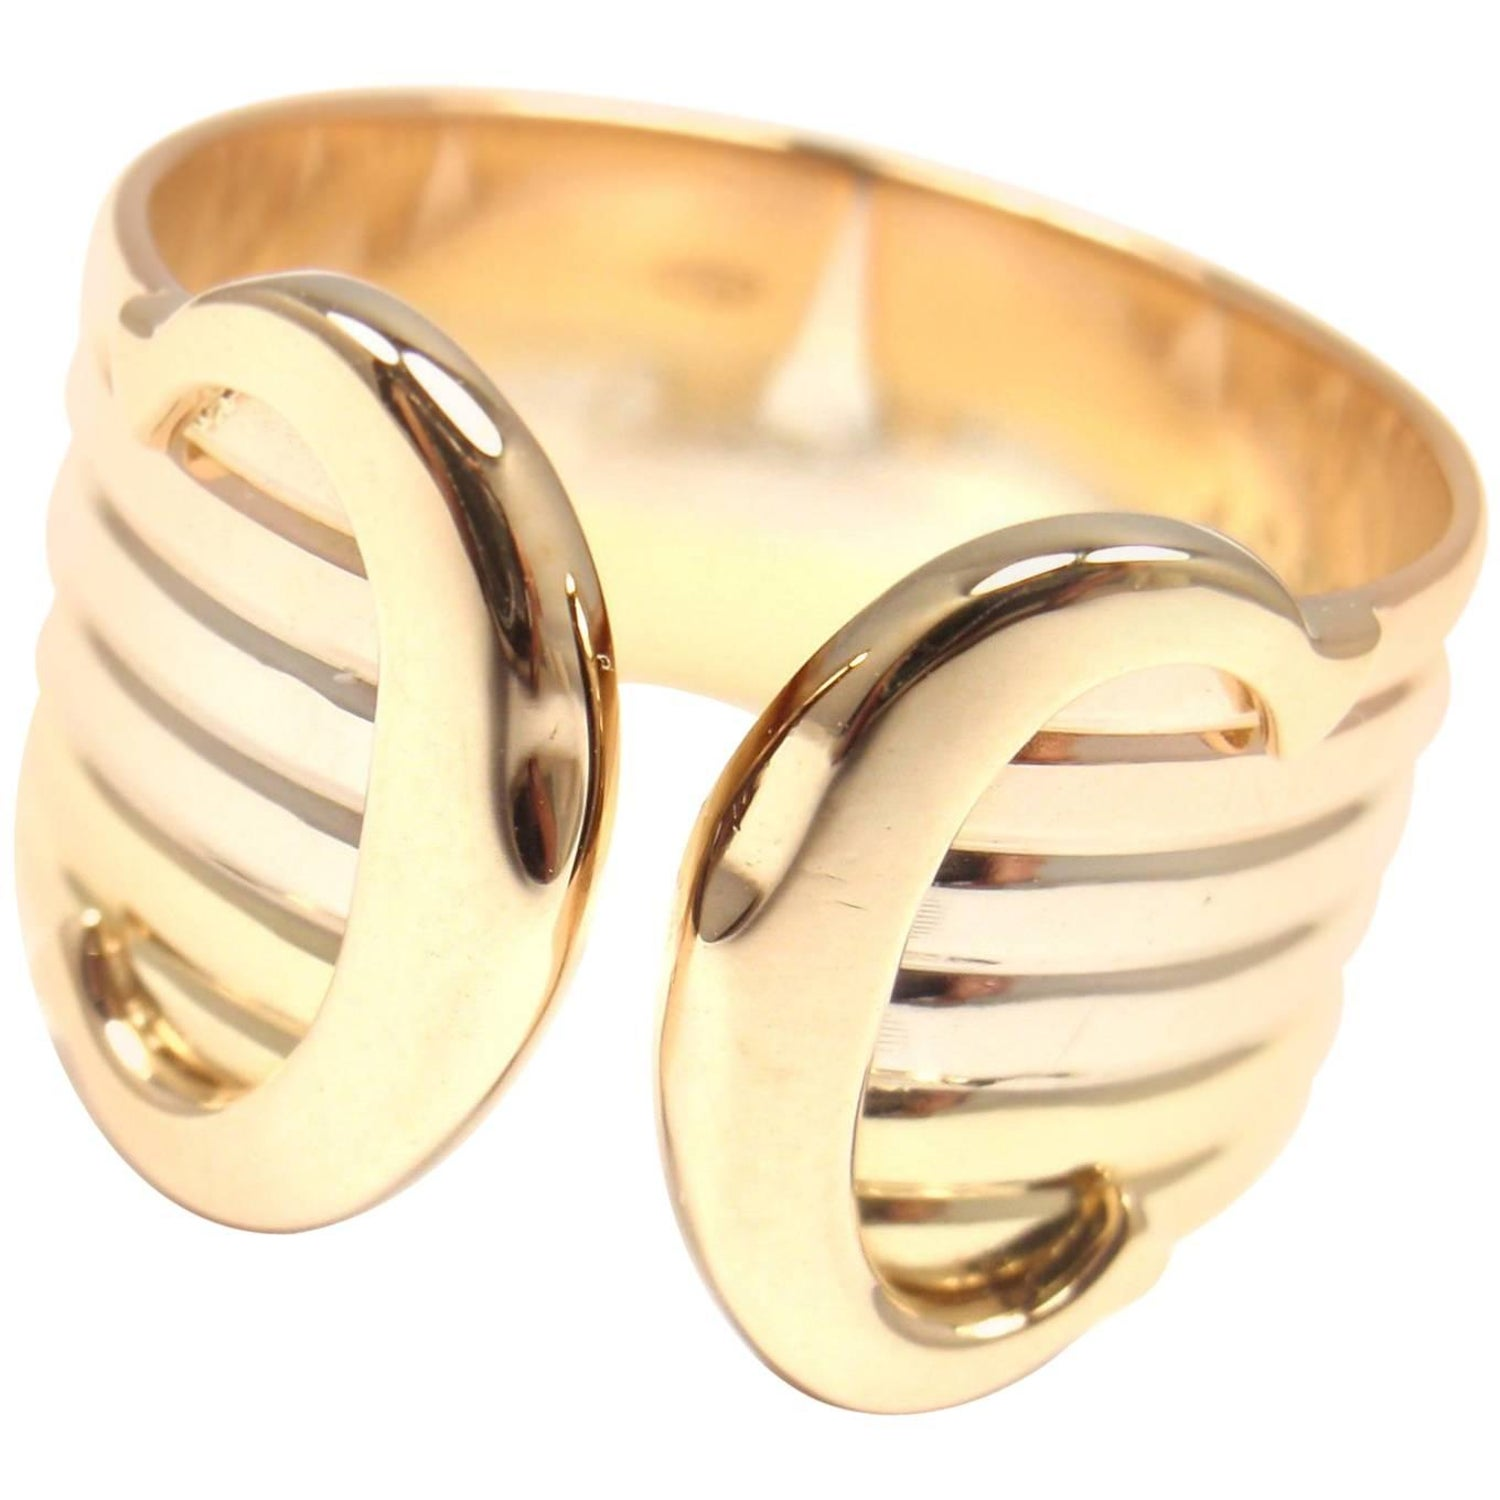 Yafa signed jewels new york ny 1stdibs page 4 - Cartier Logo Double C Motif Tricolor Gold Band Ring